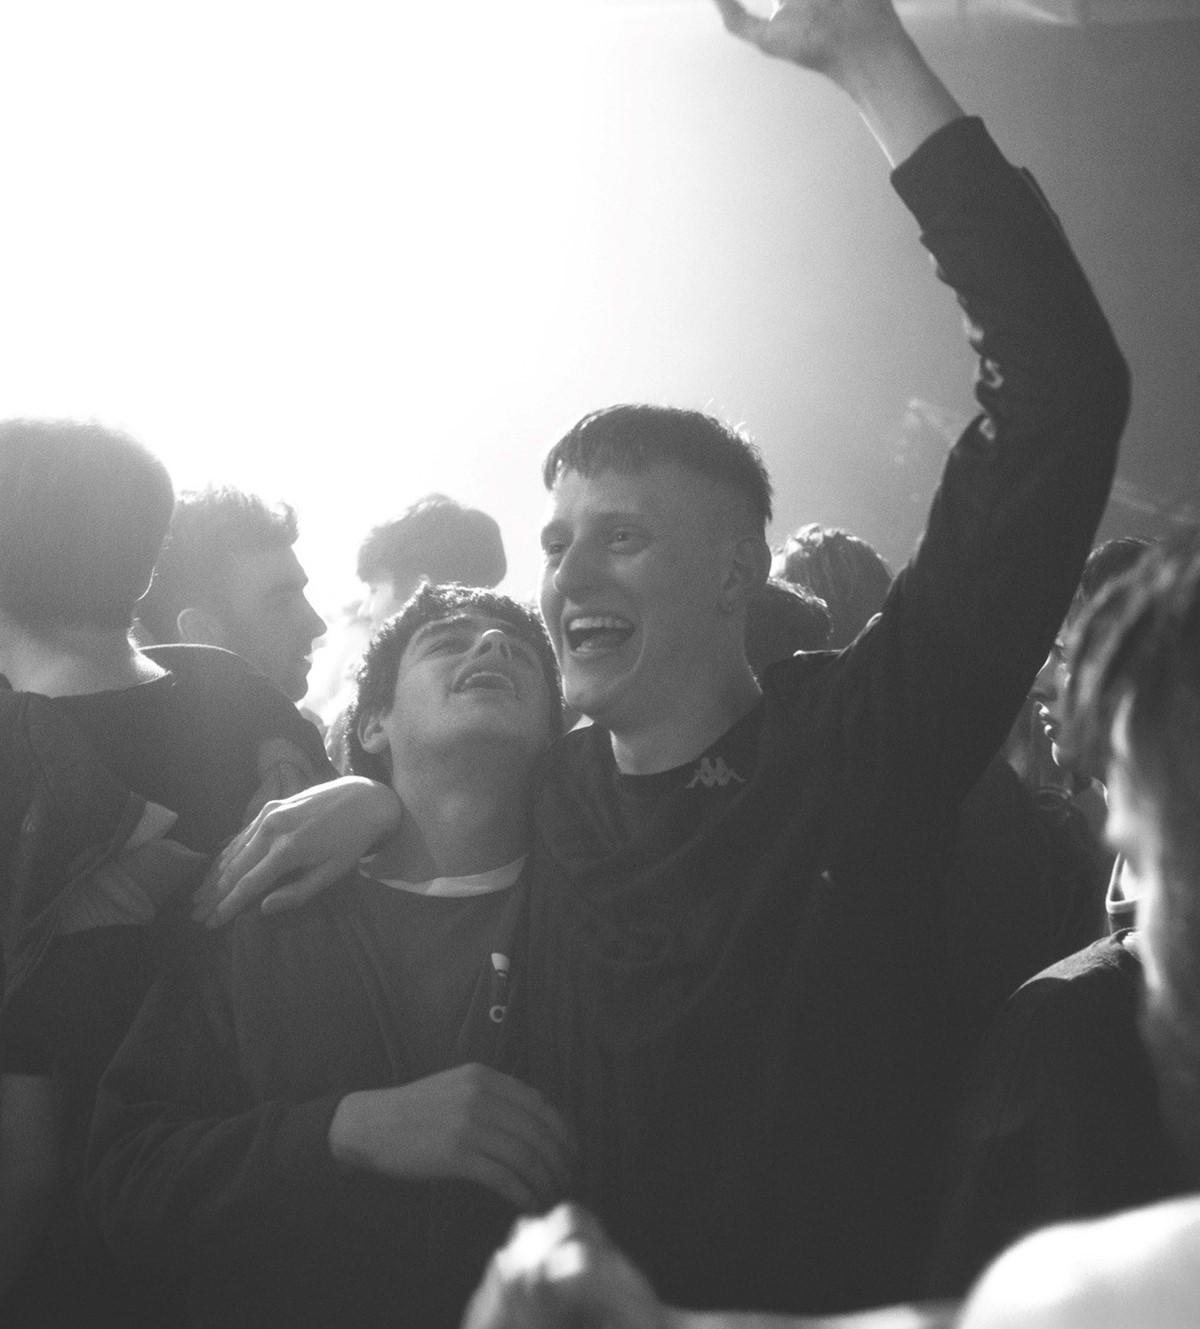 A New Film Dedicated to the Early 90s Rave Scene